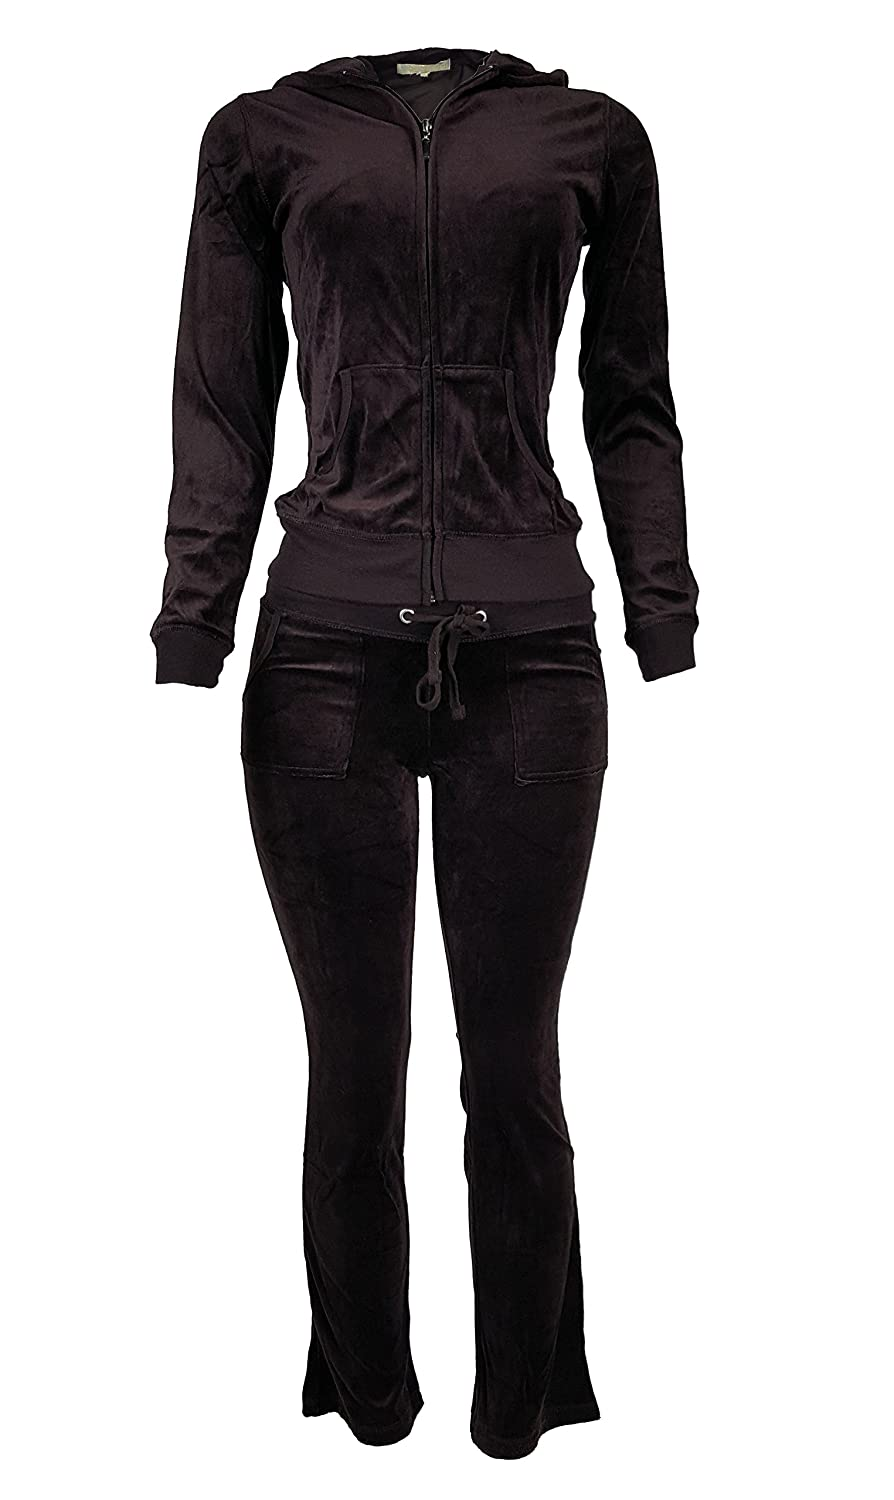 Women's Lightweight Hoodie & Sweatpants Velour Suit 2 Piece Loungewear Set (S-3XL)